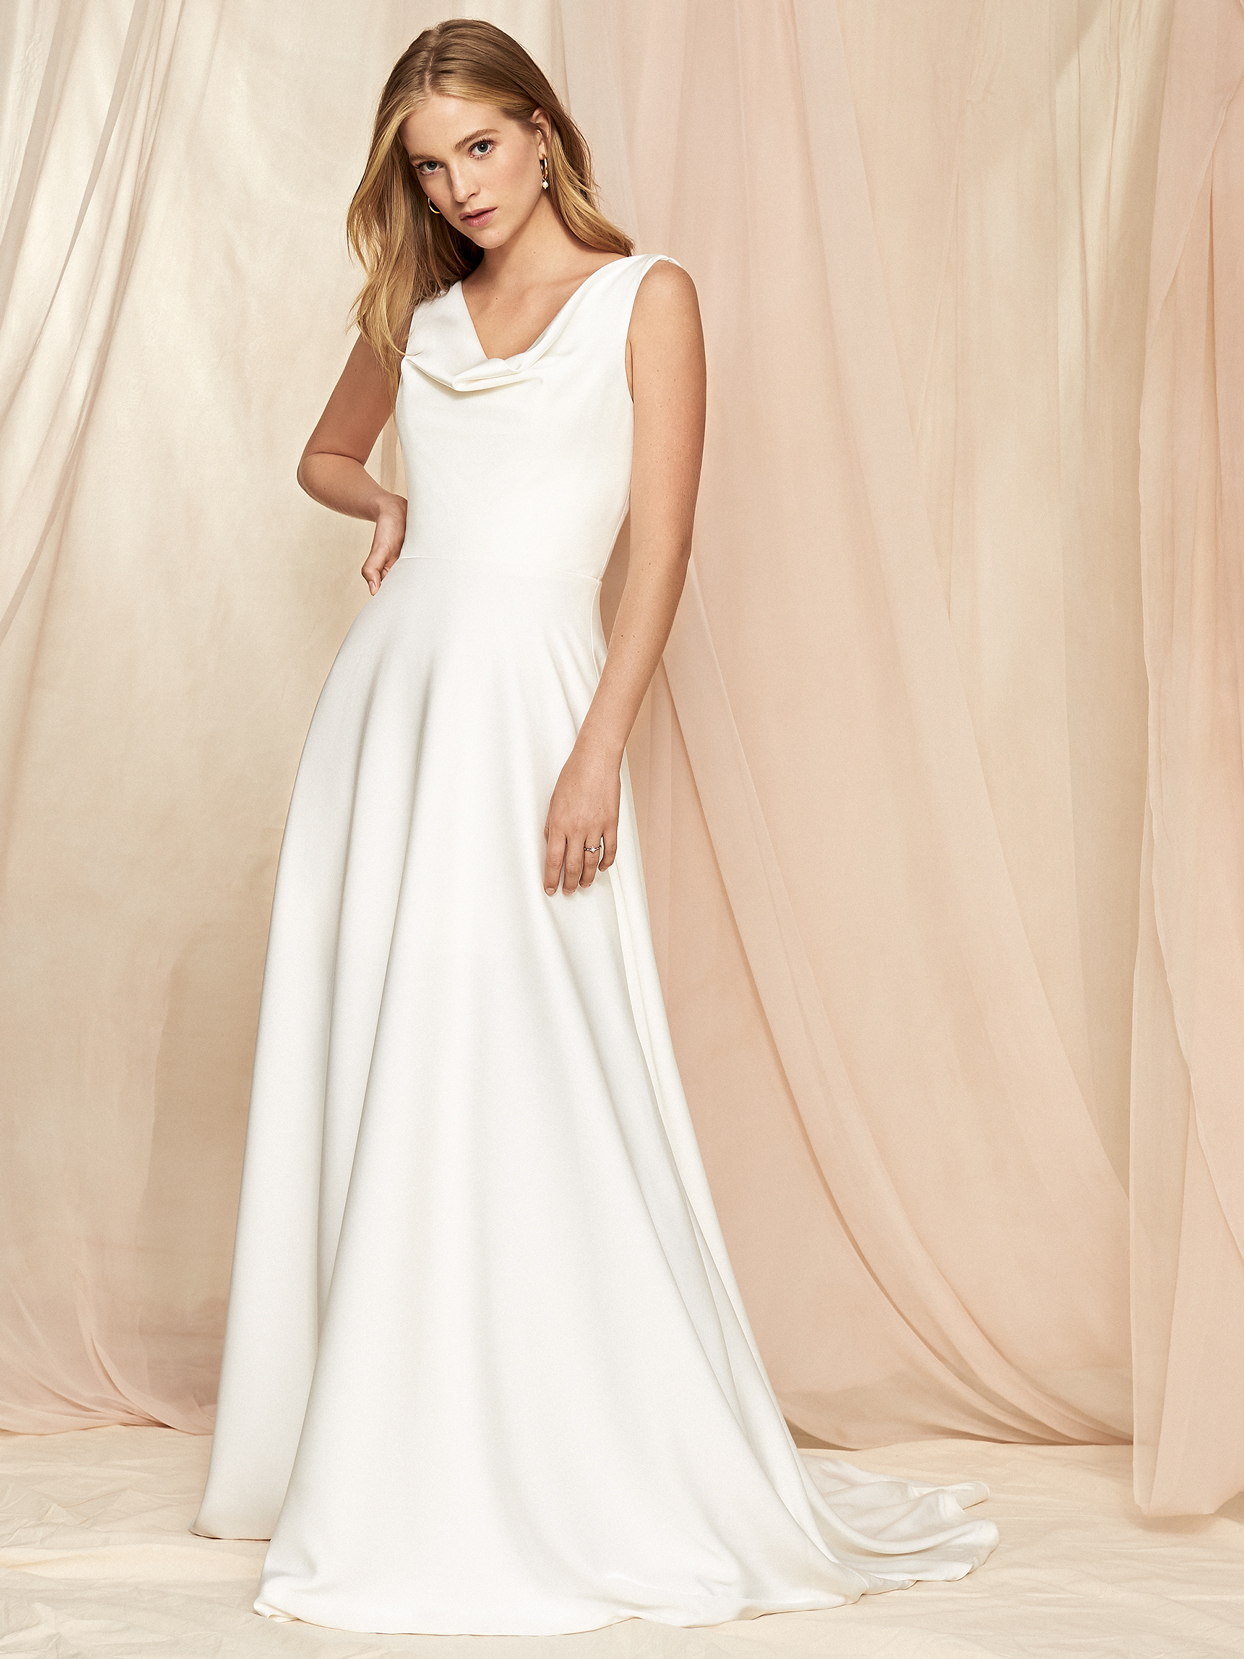 Savannah Miller cowl neck sleeveless wide strap a-line wedding dress fall 2020